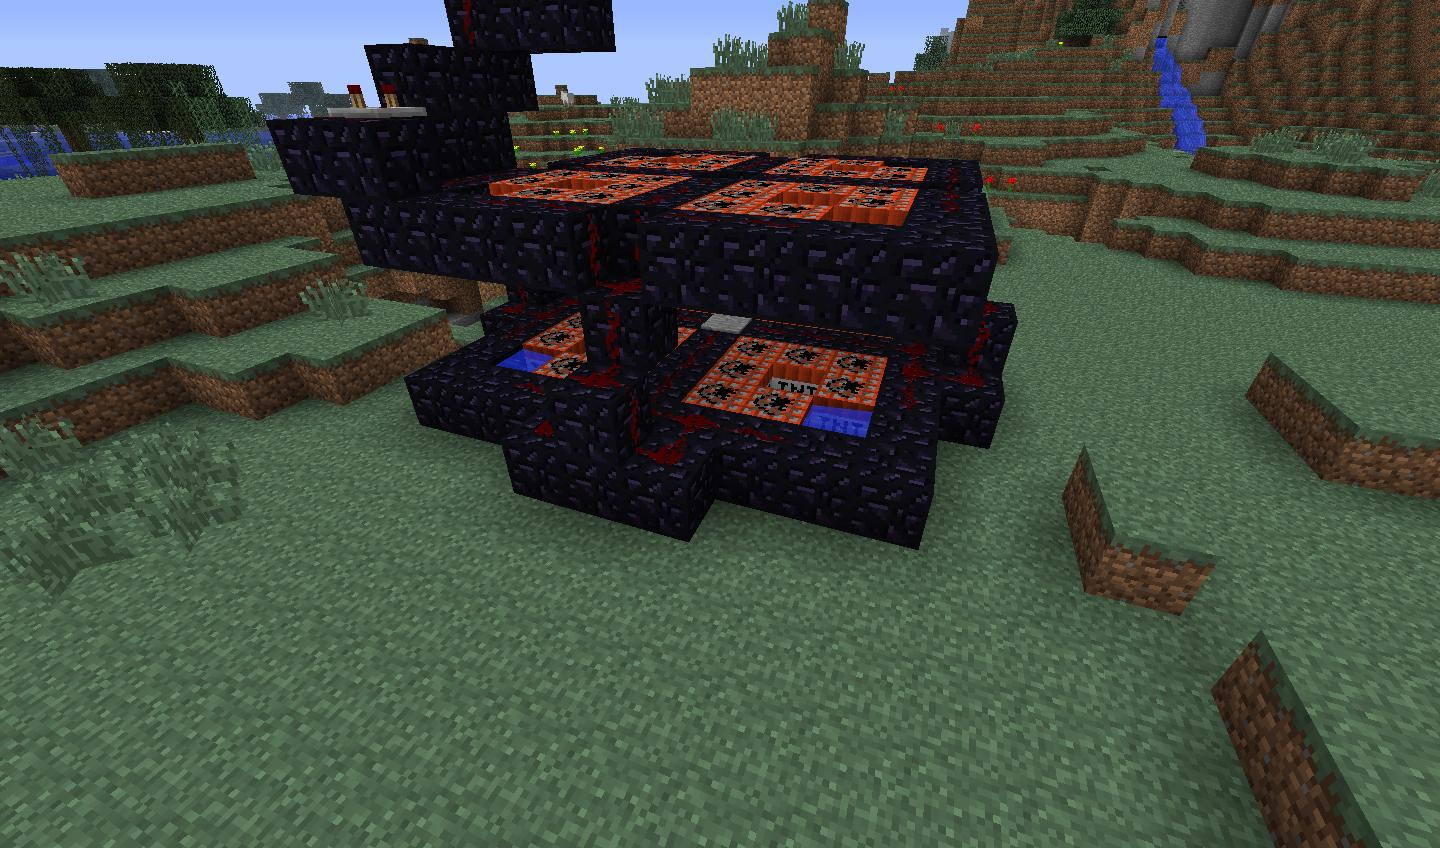 Minecraft Redstone Can I Build A Tnt Cannon That Fires